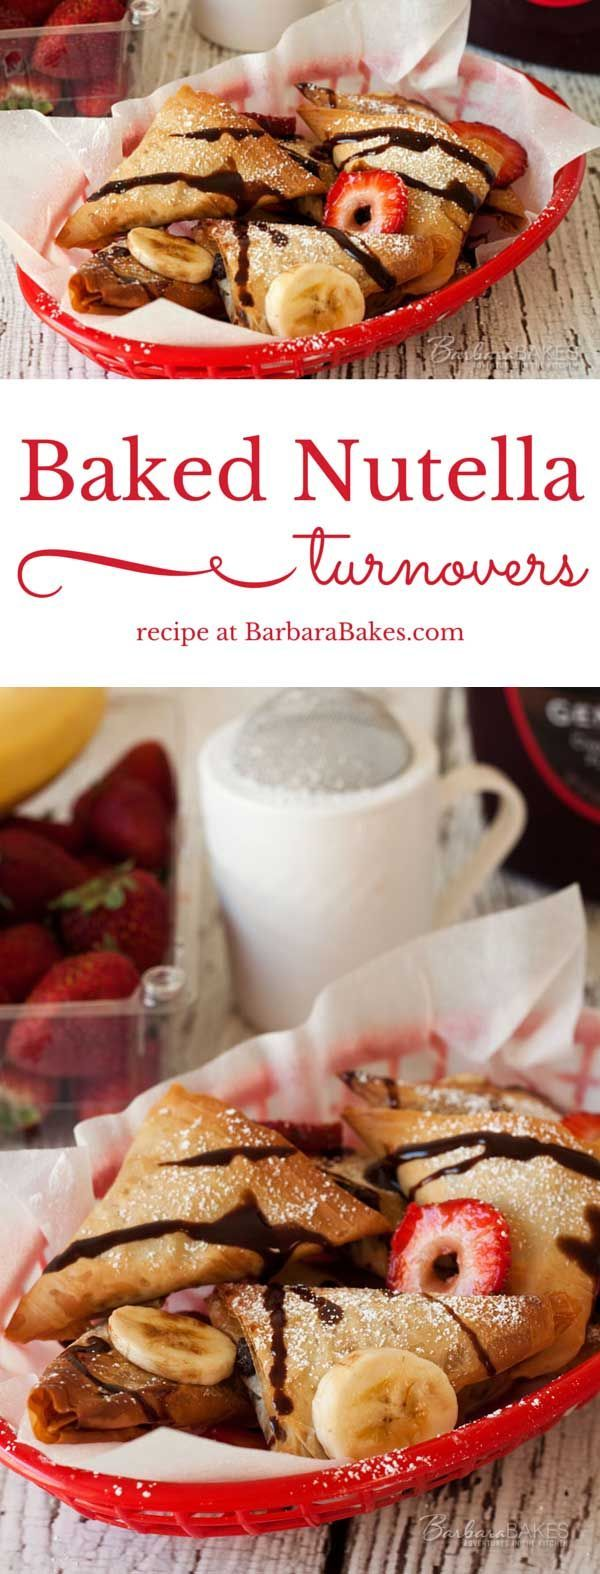 Baked Nutella Turnovers - easy to make with ready to use phyllo dough.